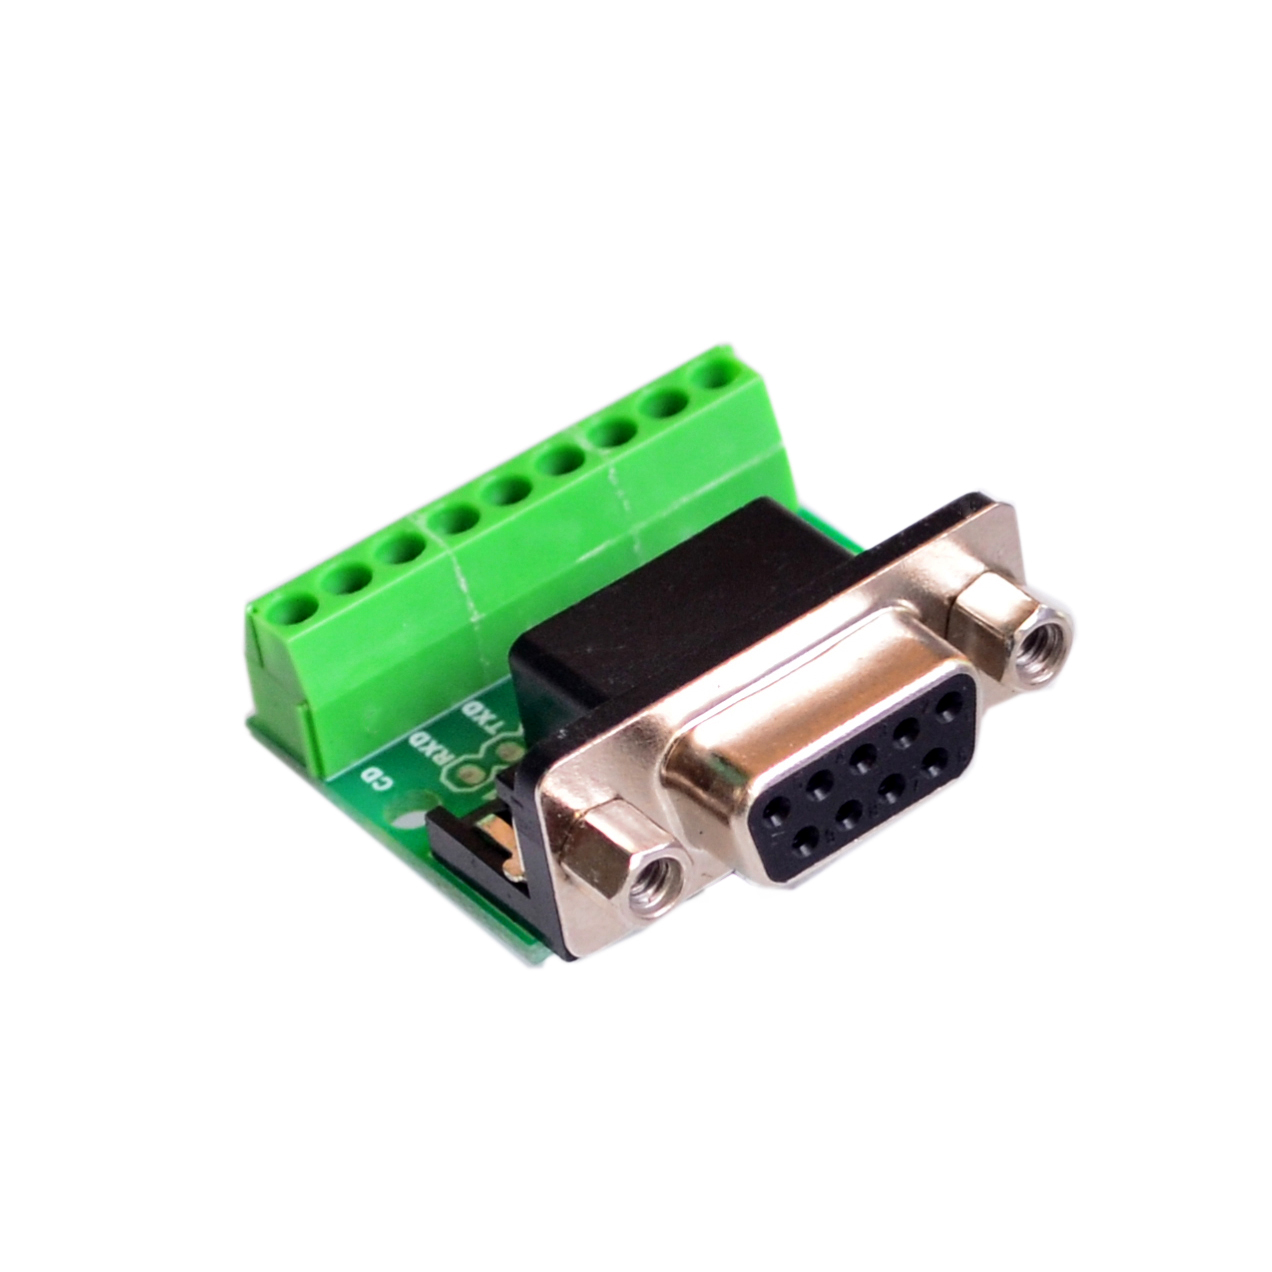 DB9 RS232 Female Serial Connector Breakout Board Screw Terminals Jack Post